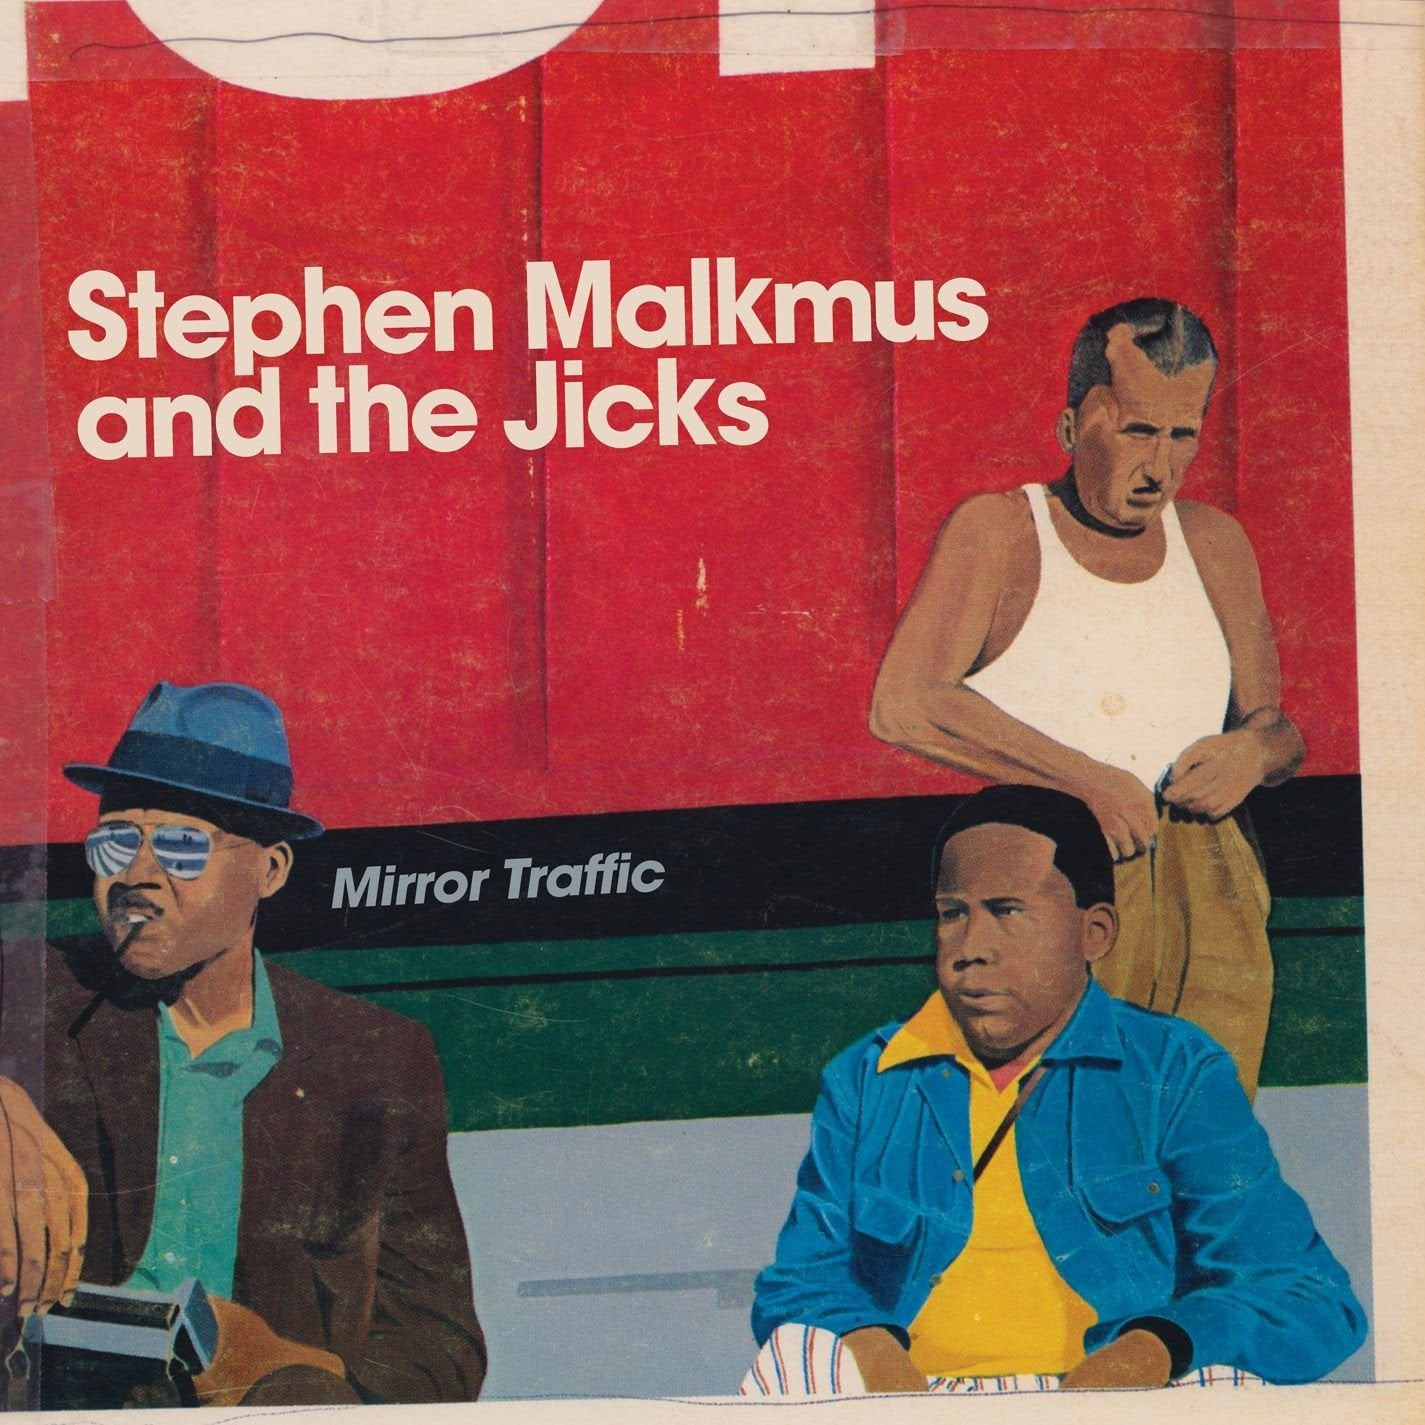 Stephen Malkmus And The Jicks ‎– Mirror Traffic - New Vinyl 2011 Matador 2 Lp Pressing with Etched D-Side and Download - Indie Rock